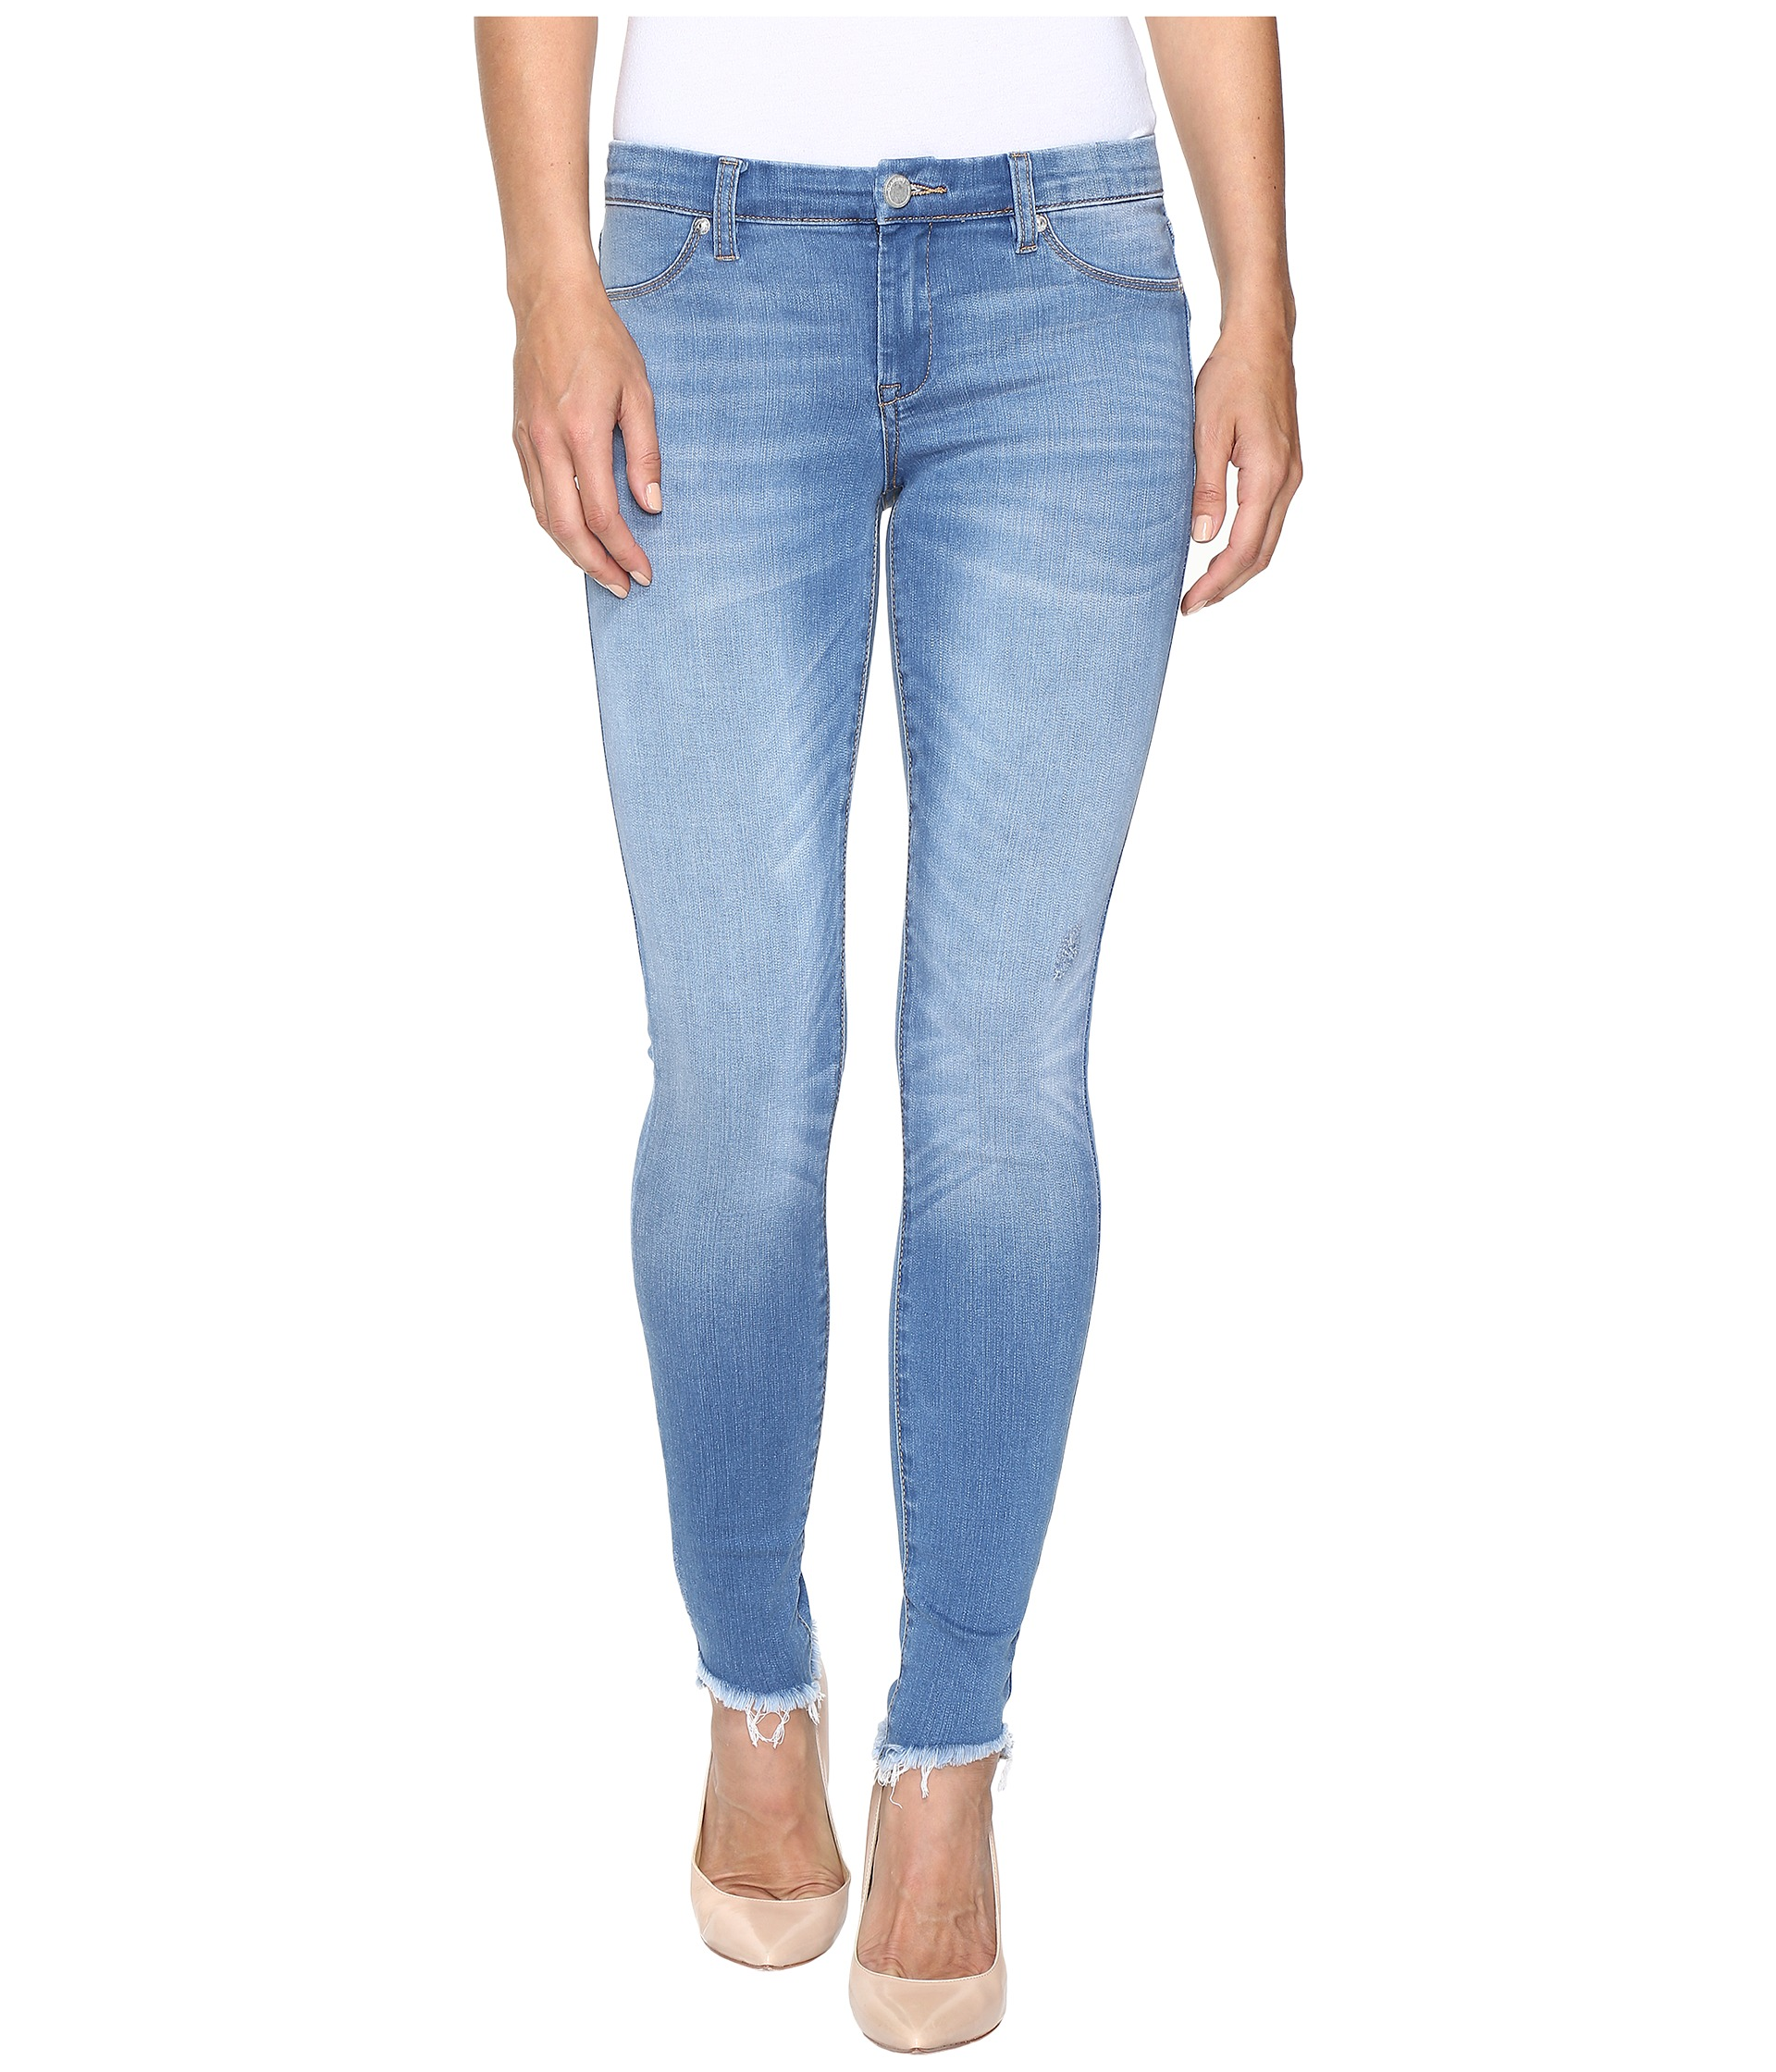 Jeans Women at 6pm.com